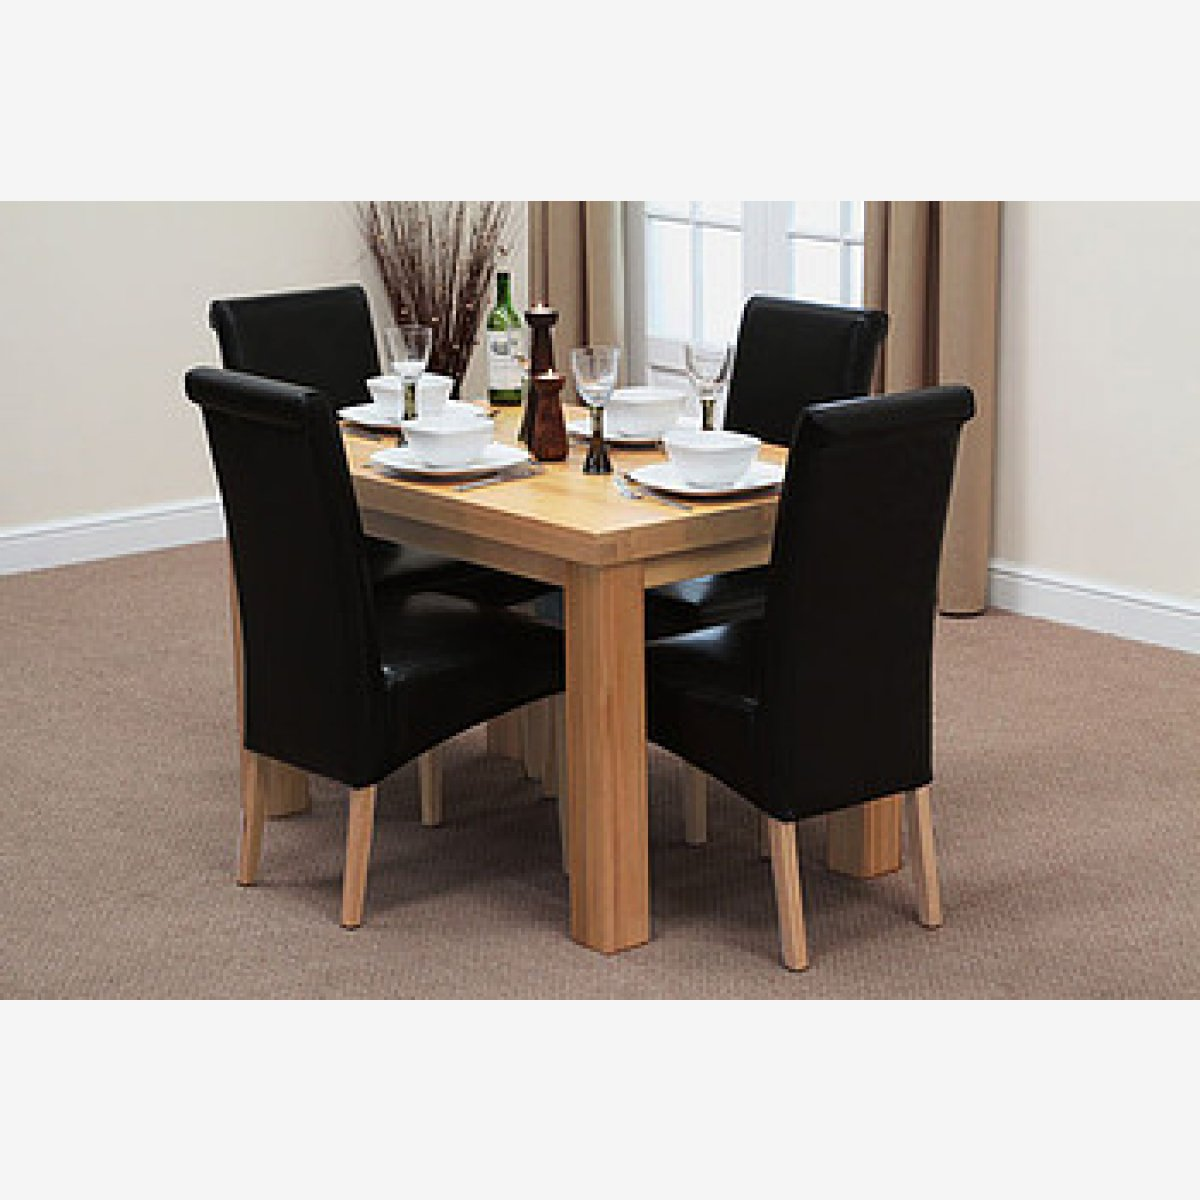 Fresco 4ft solid oak dining table 4 black leather chairs for 4 x dining room chairs